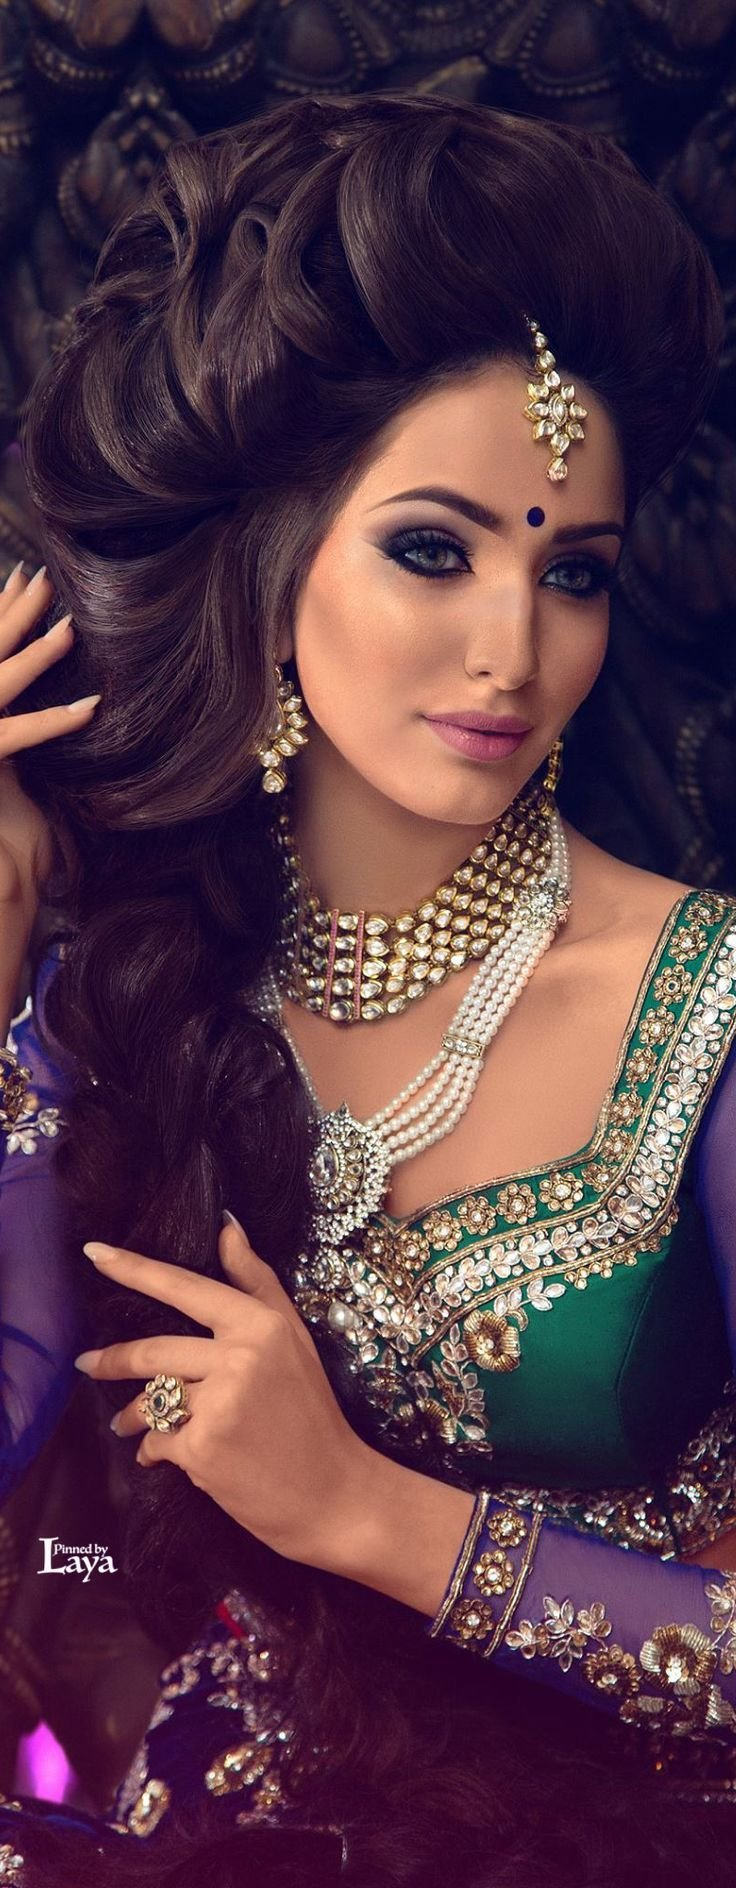 The Best 231 Best Images About Indian Brides On Pinterest Desi Pictures